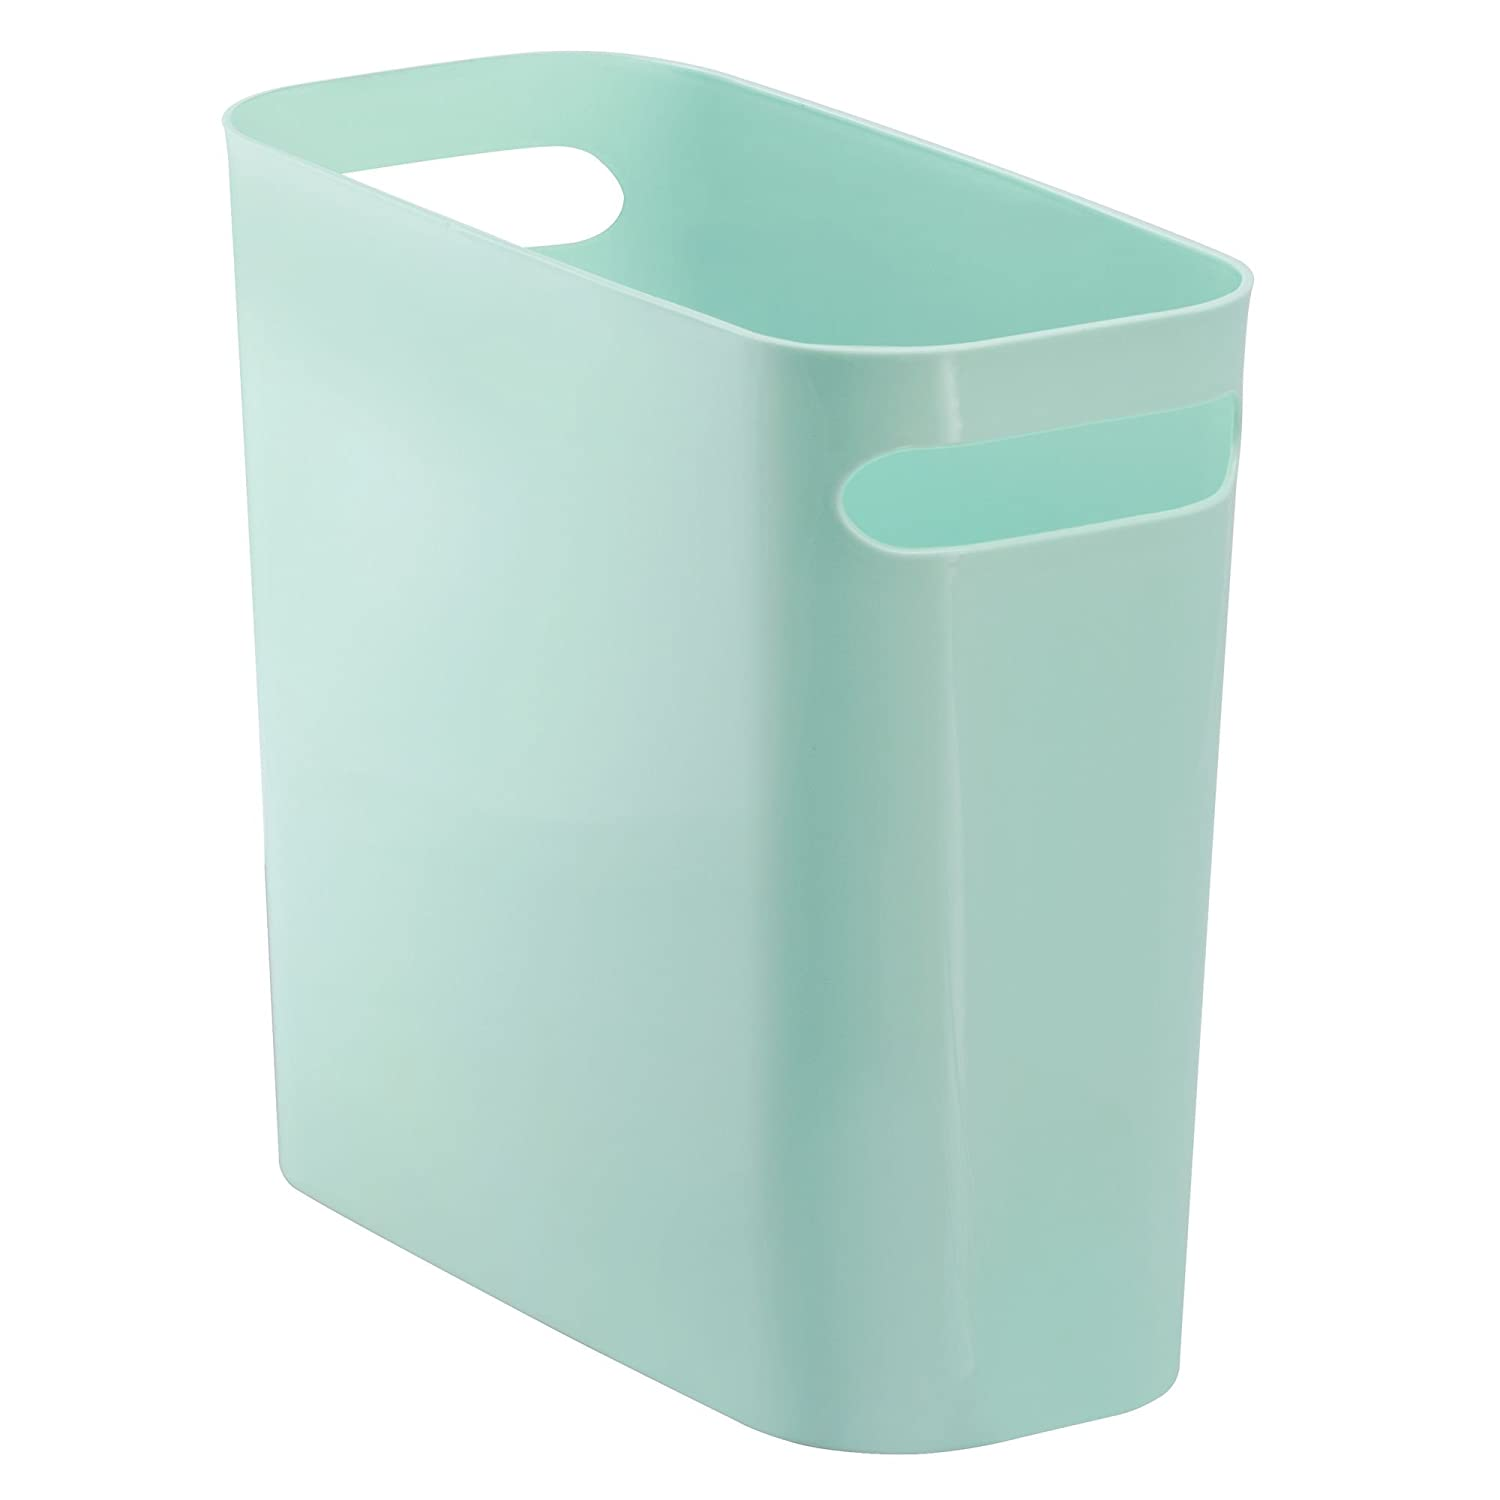 InterDesign Una Rectangular Trash Can with Handles, Waste Basket Garbage Can for Bathroom, Bedroom, Home Office, Dorm, College, 10-Inch, Mint Green